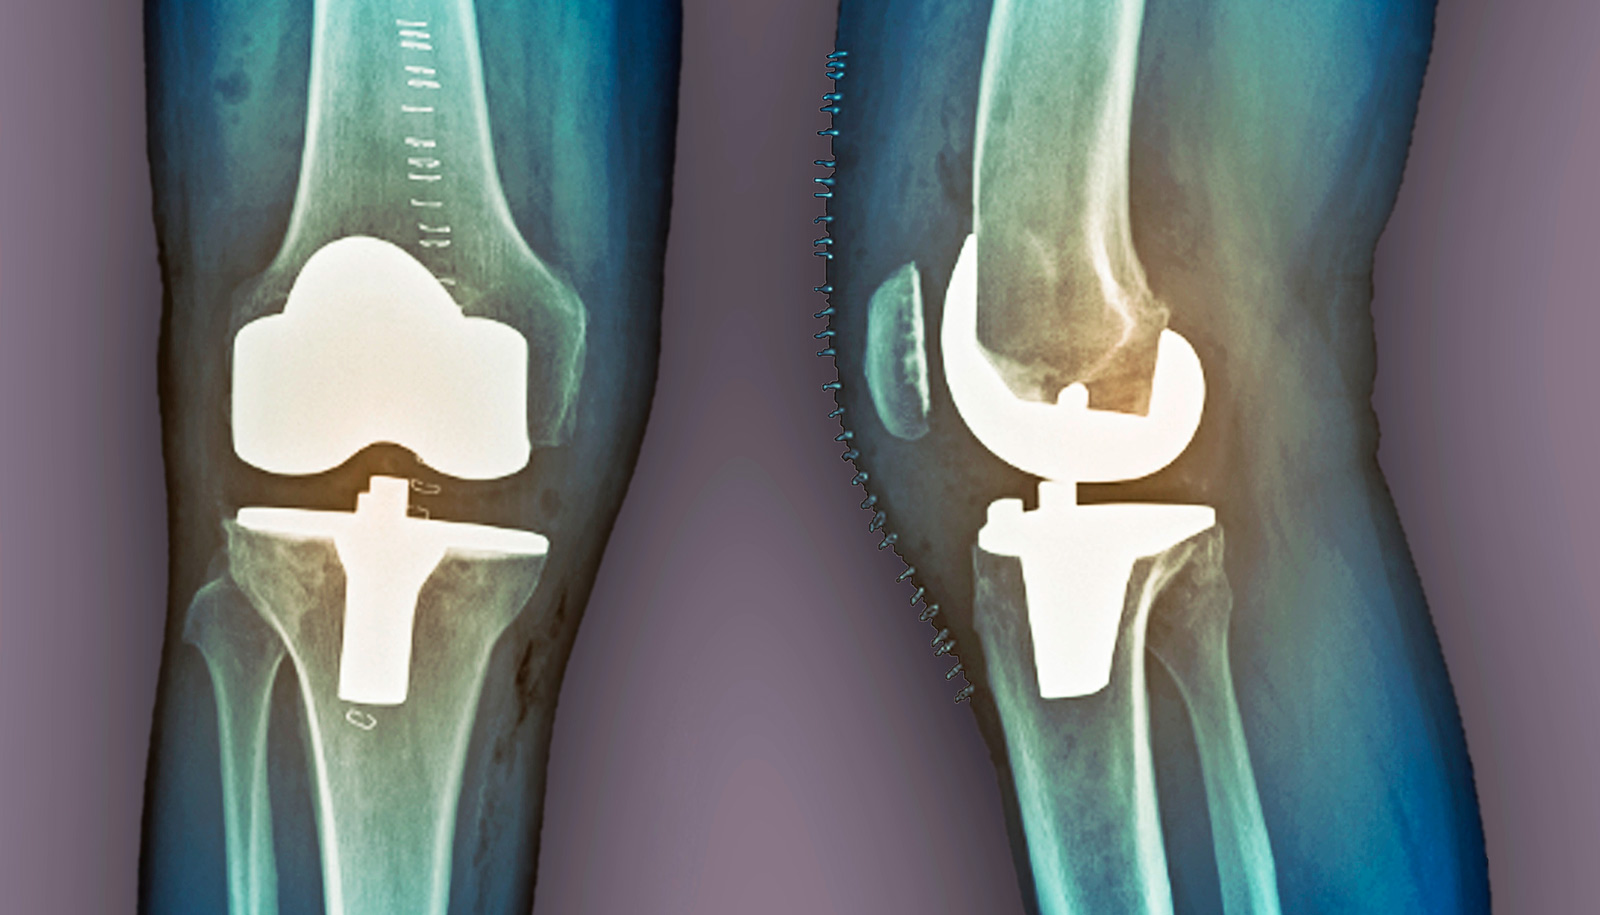 Hospitals may dole out hip, knee replacements unfairly